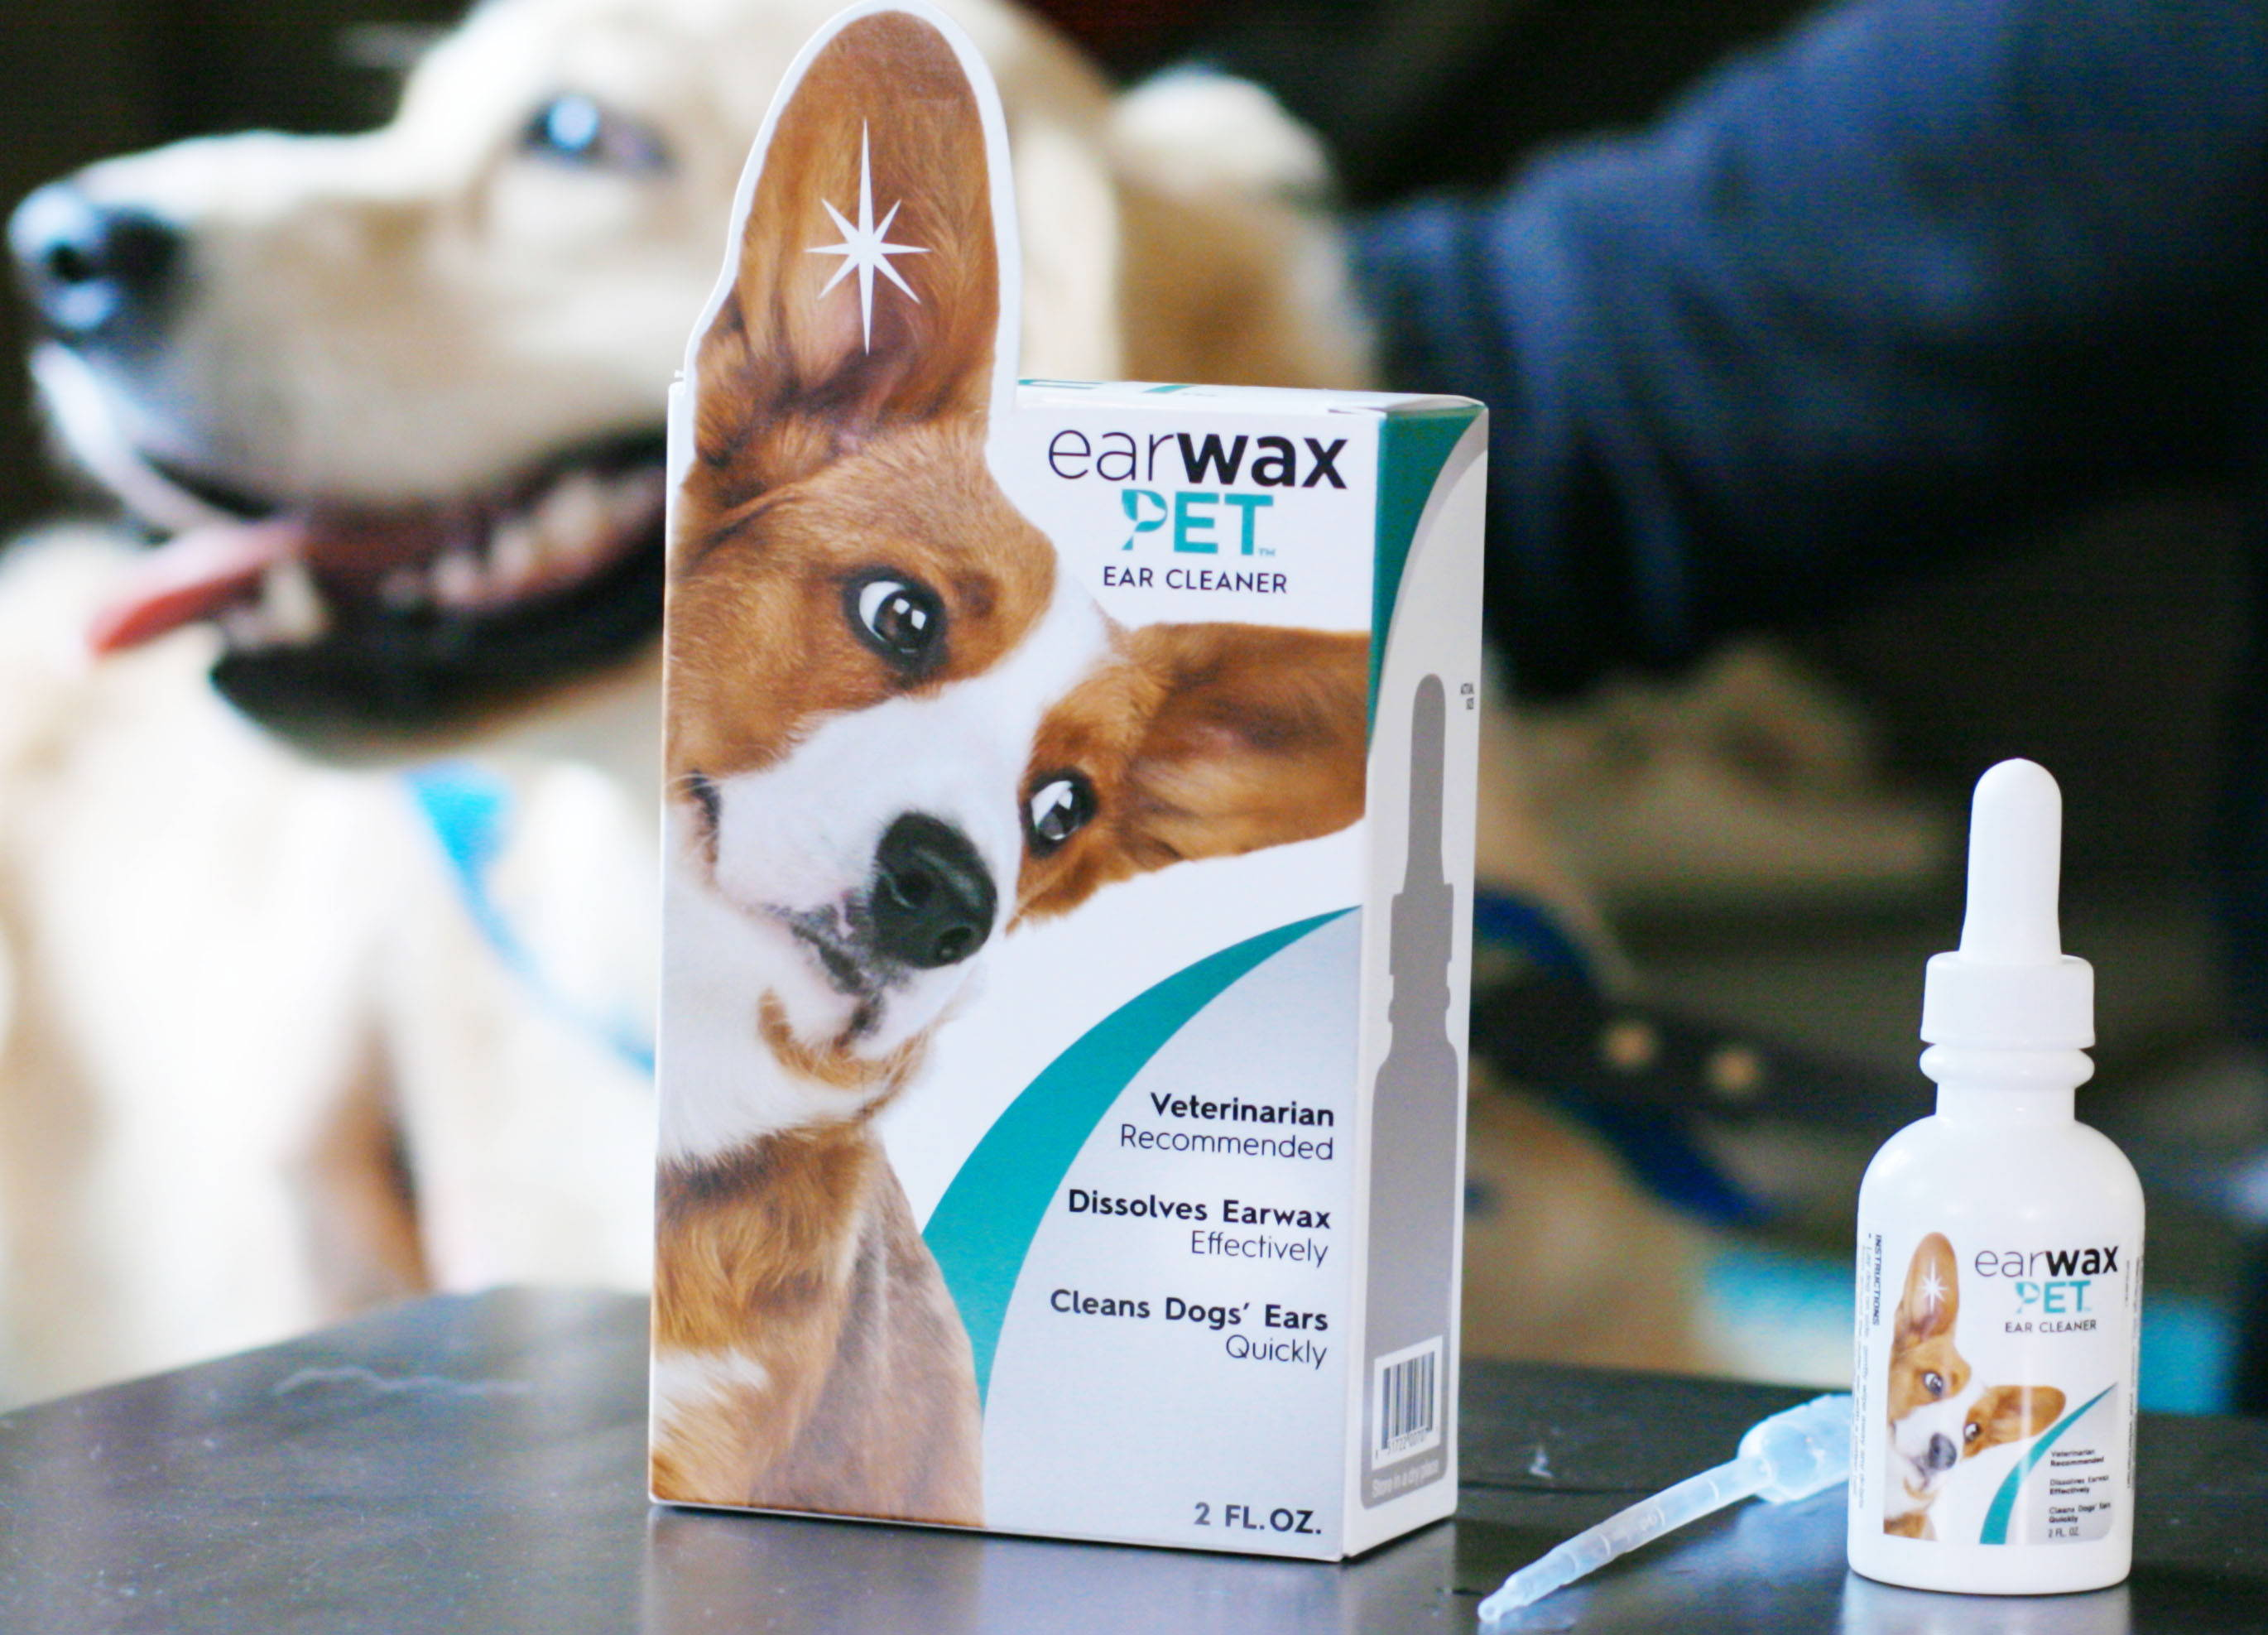 EARWAX PET Product with Dog in Background